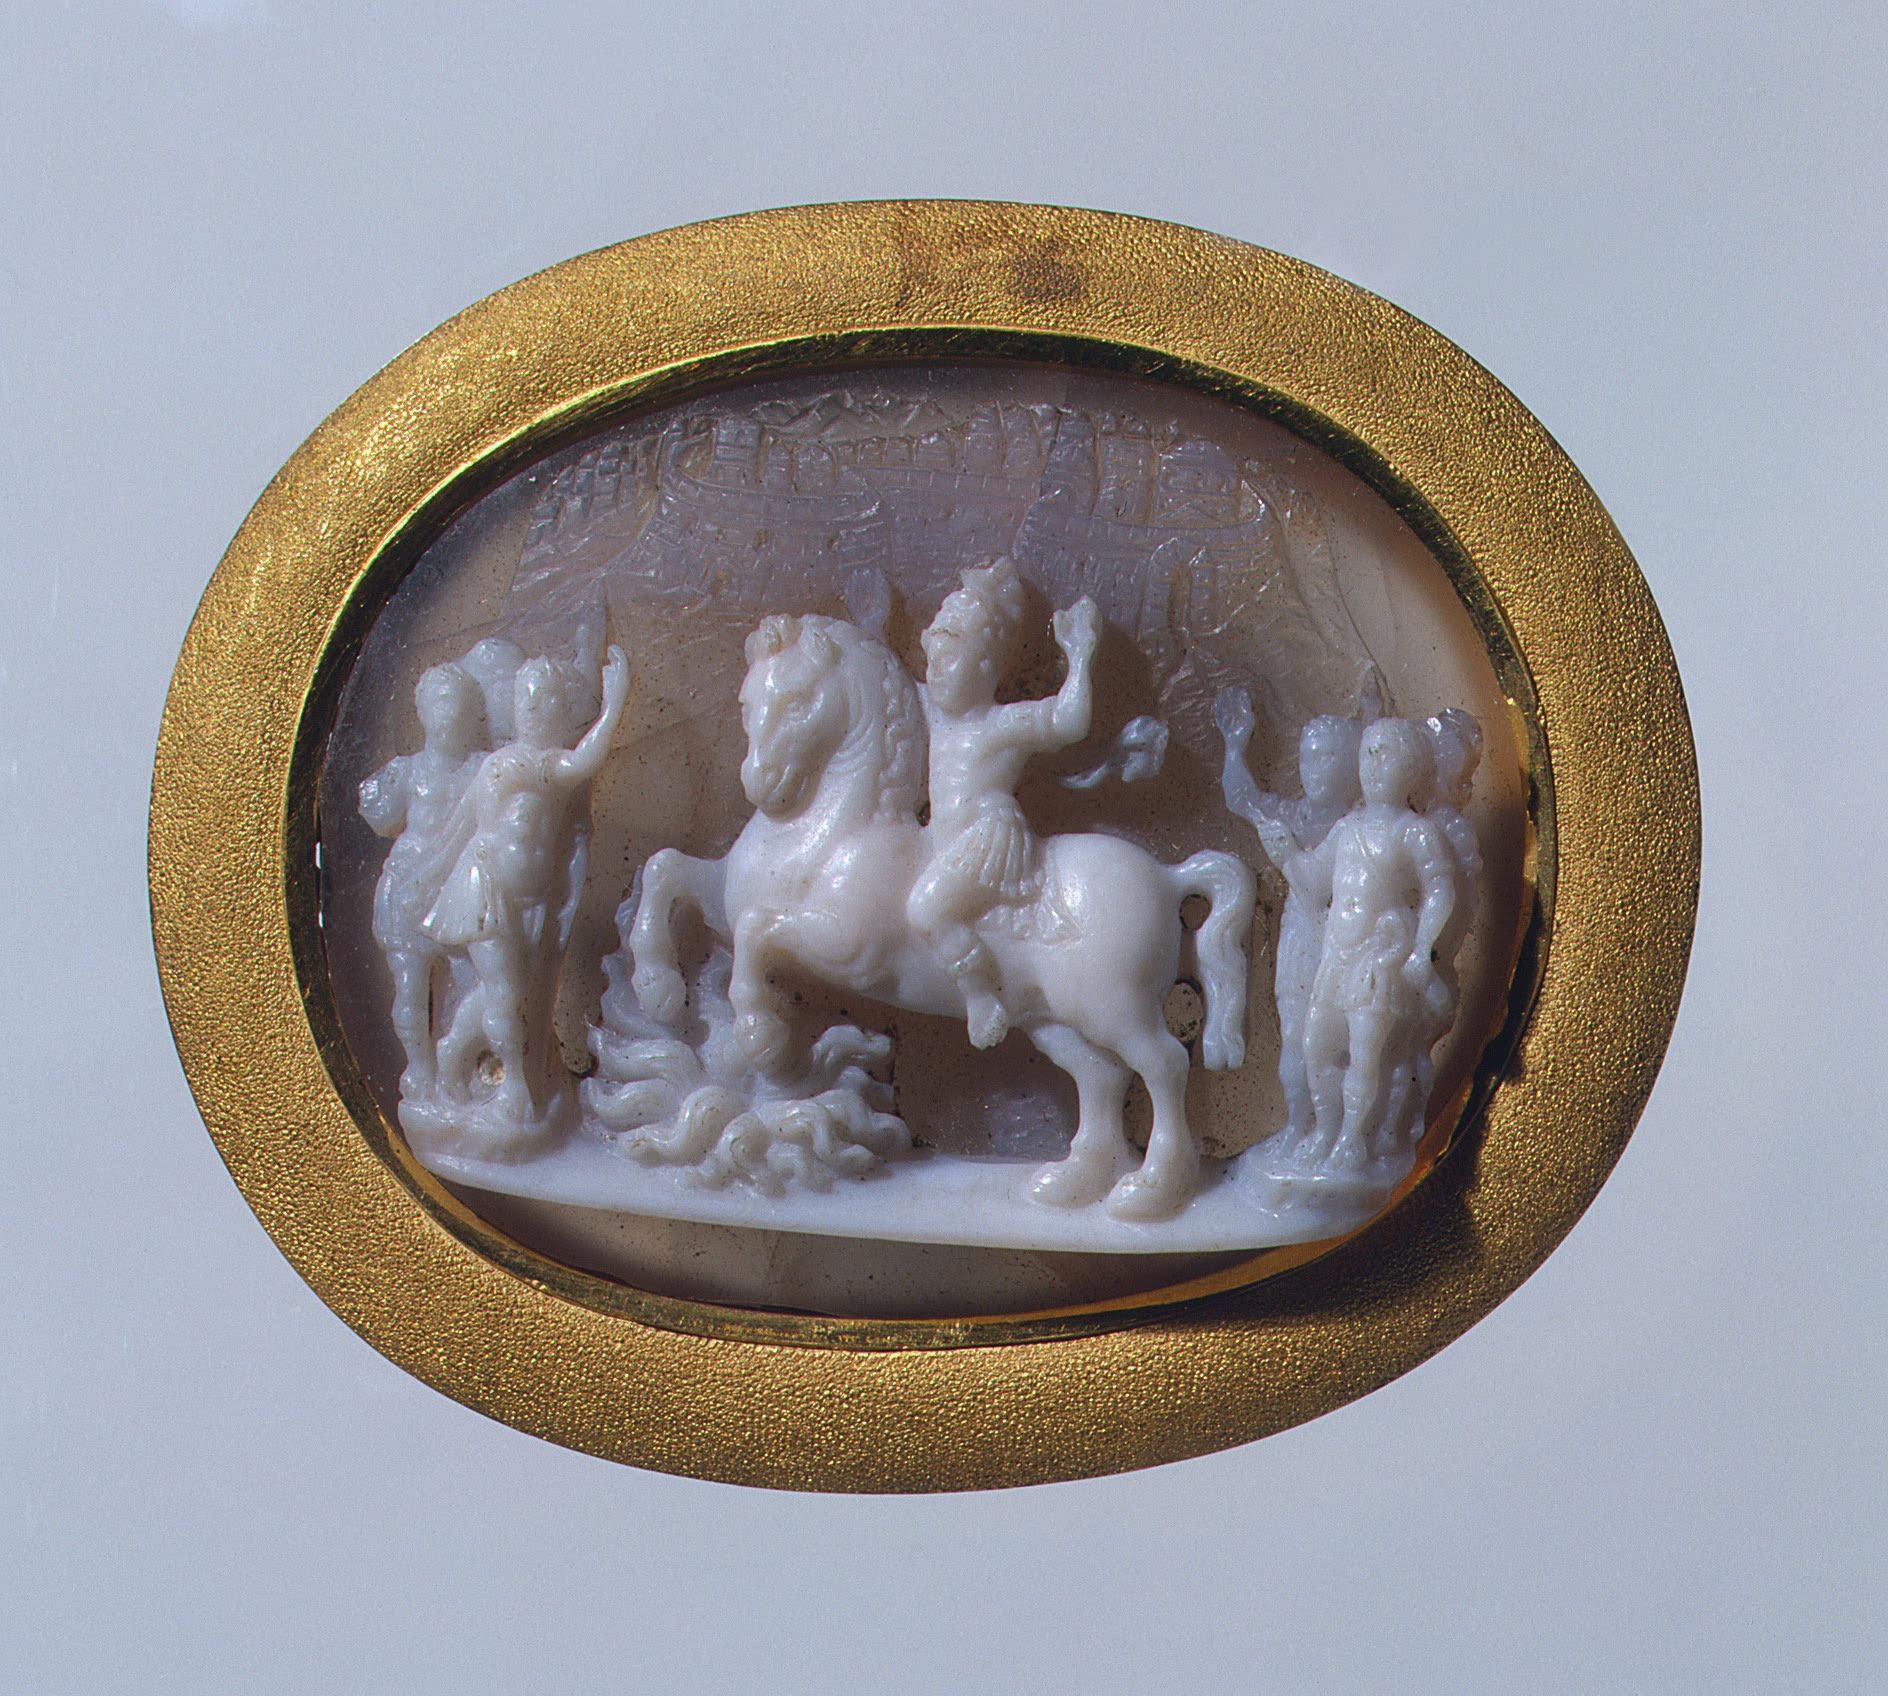 Cameo depicting the feat of Marcus Curtius, third quarter of the 16th century, probably Francesco Tortorino, Italy